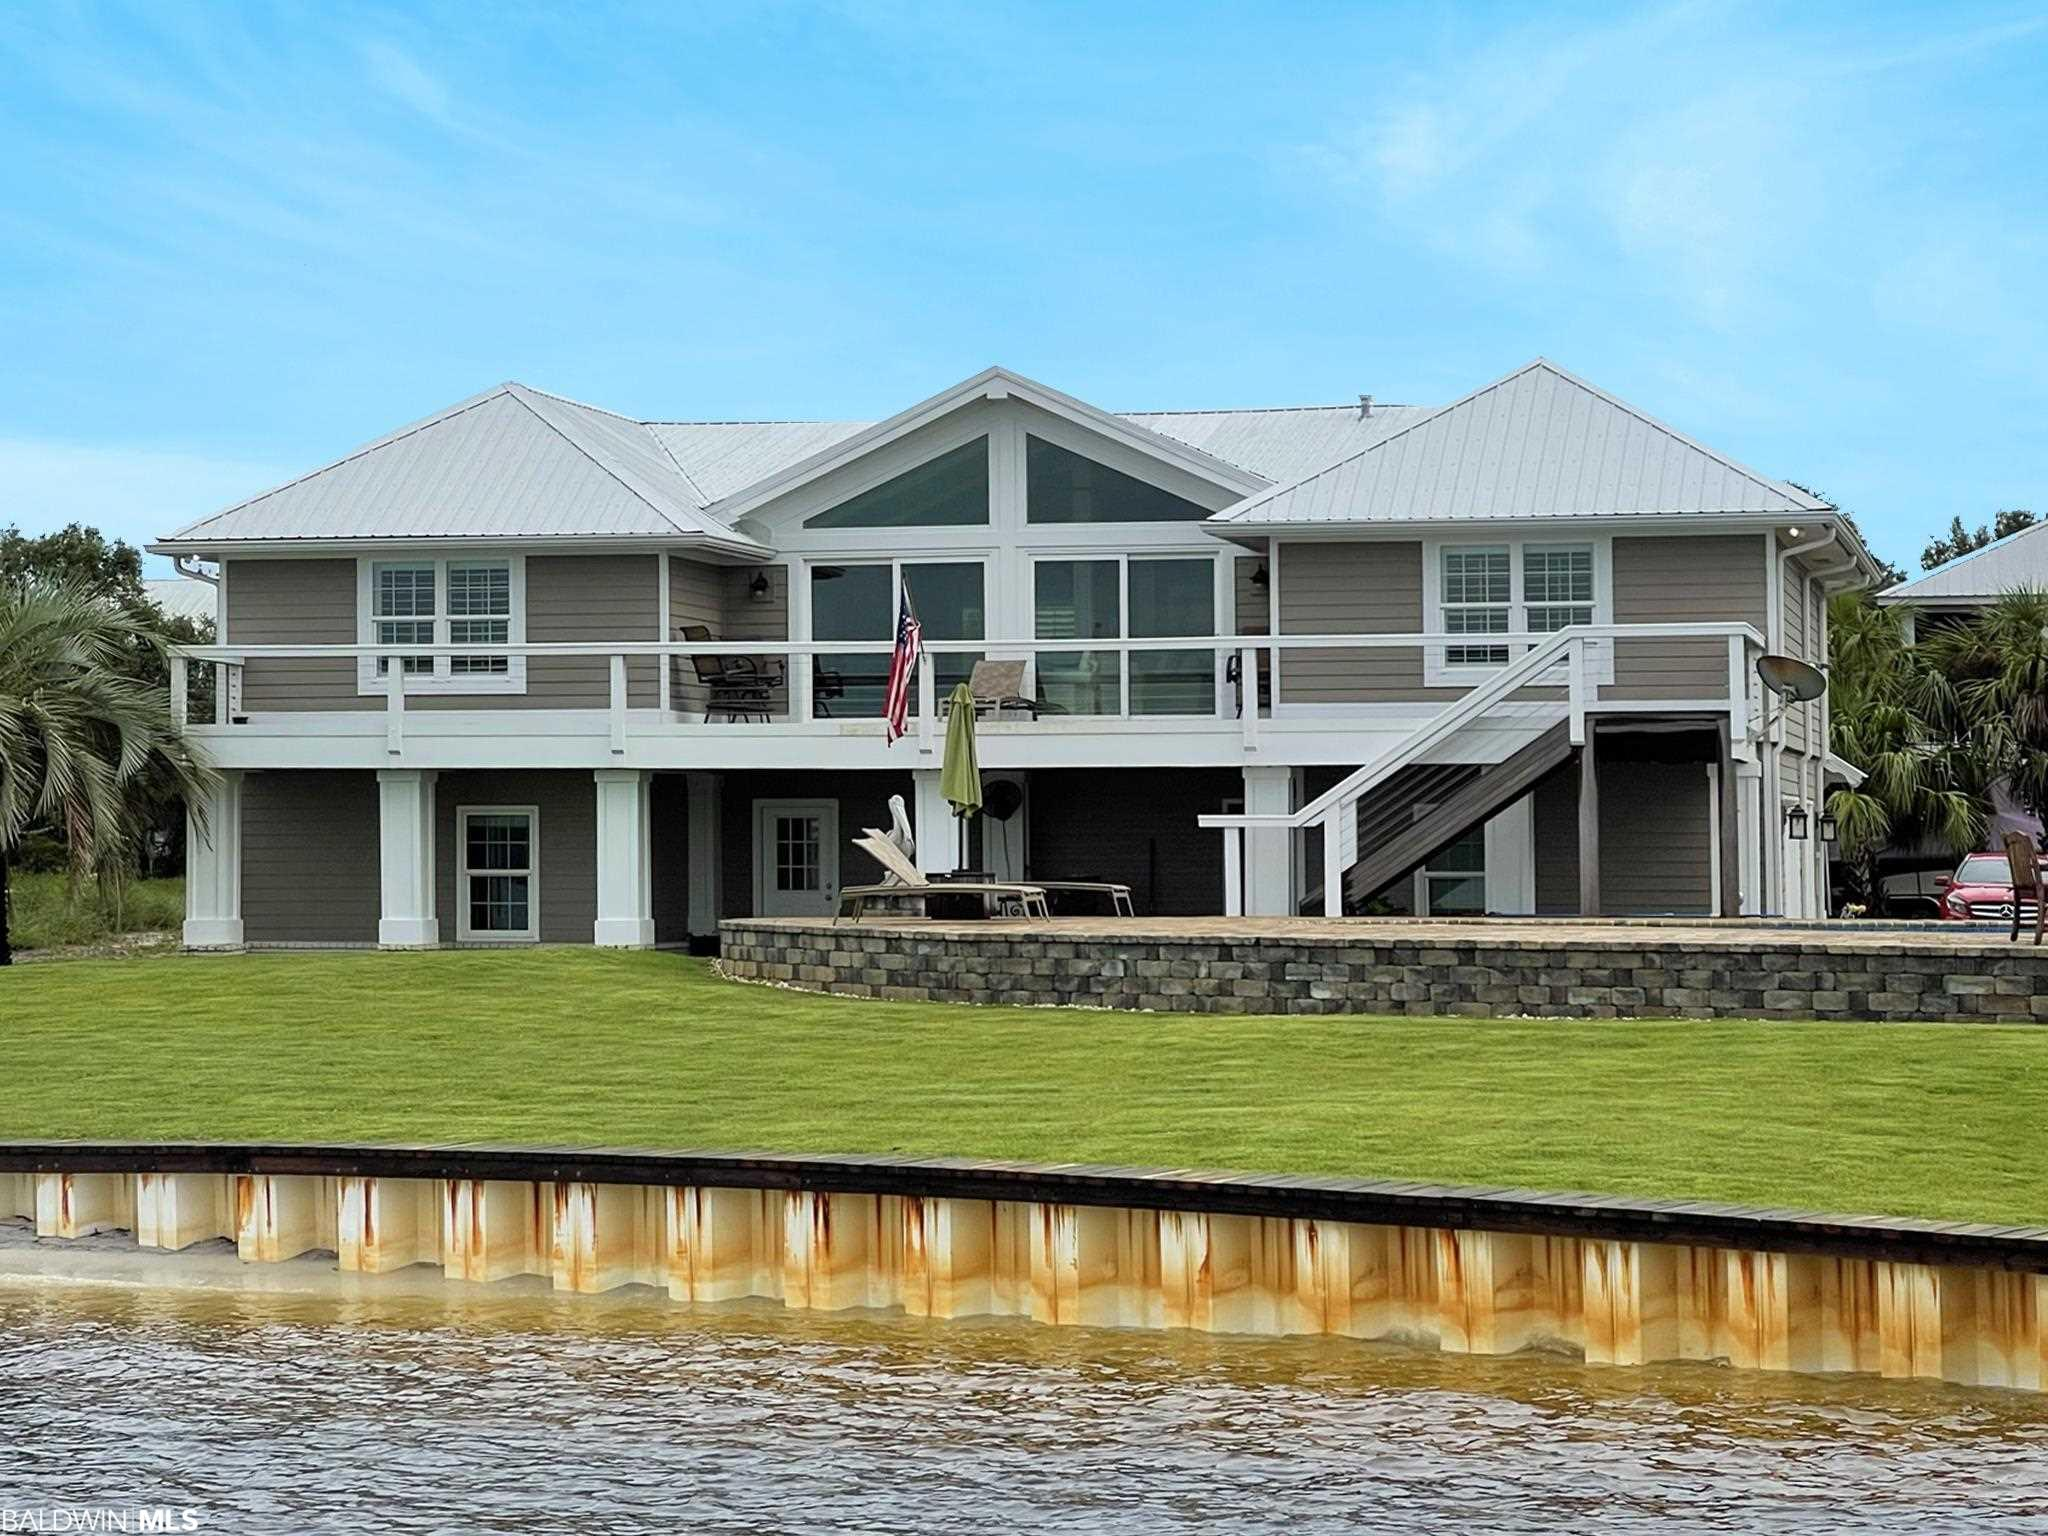 Location! Location! Location is not just a real estate saying... it is real!  This home provides privacy, close proximity to the Gulf for the serious fishing adventurist, close proximity to the entrance of the Island, convenience for a relaxing day at the islands and all the restaurants by boat. This home was completely remodeled in 2014 and sits directly on Bayou Saint John. Boat house built of Brazilian Hardwood complete with two boat lifts (6,000 lb. & 10,000 lb.)